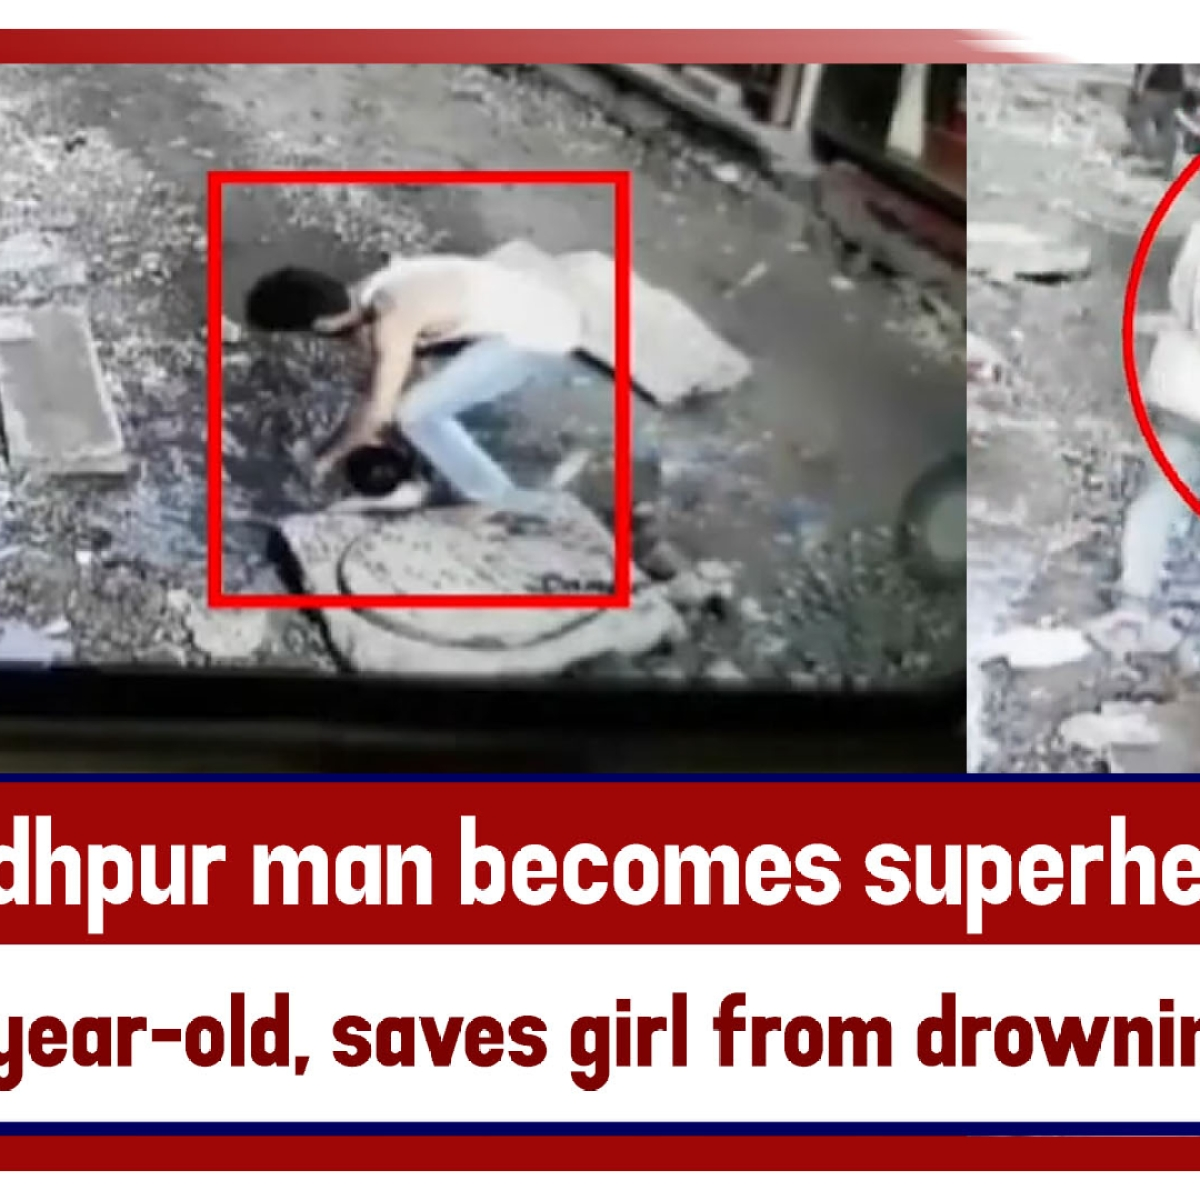 Jodhpur man becomes superhero for 4-year-old, saves girl from drowning in manhole